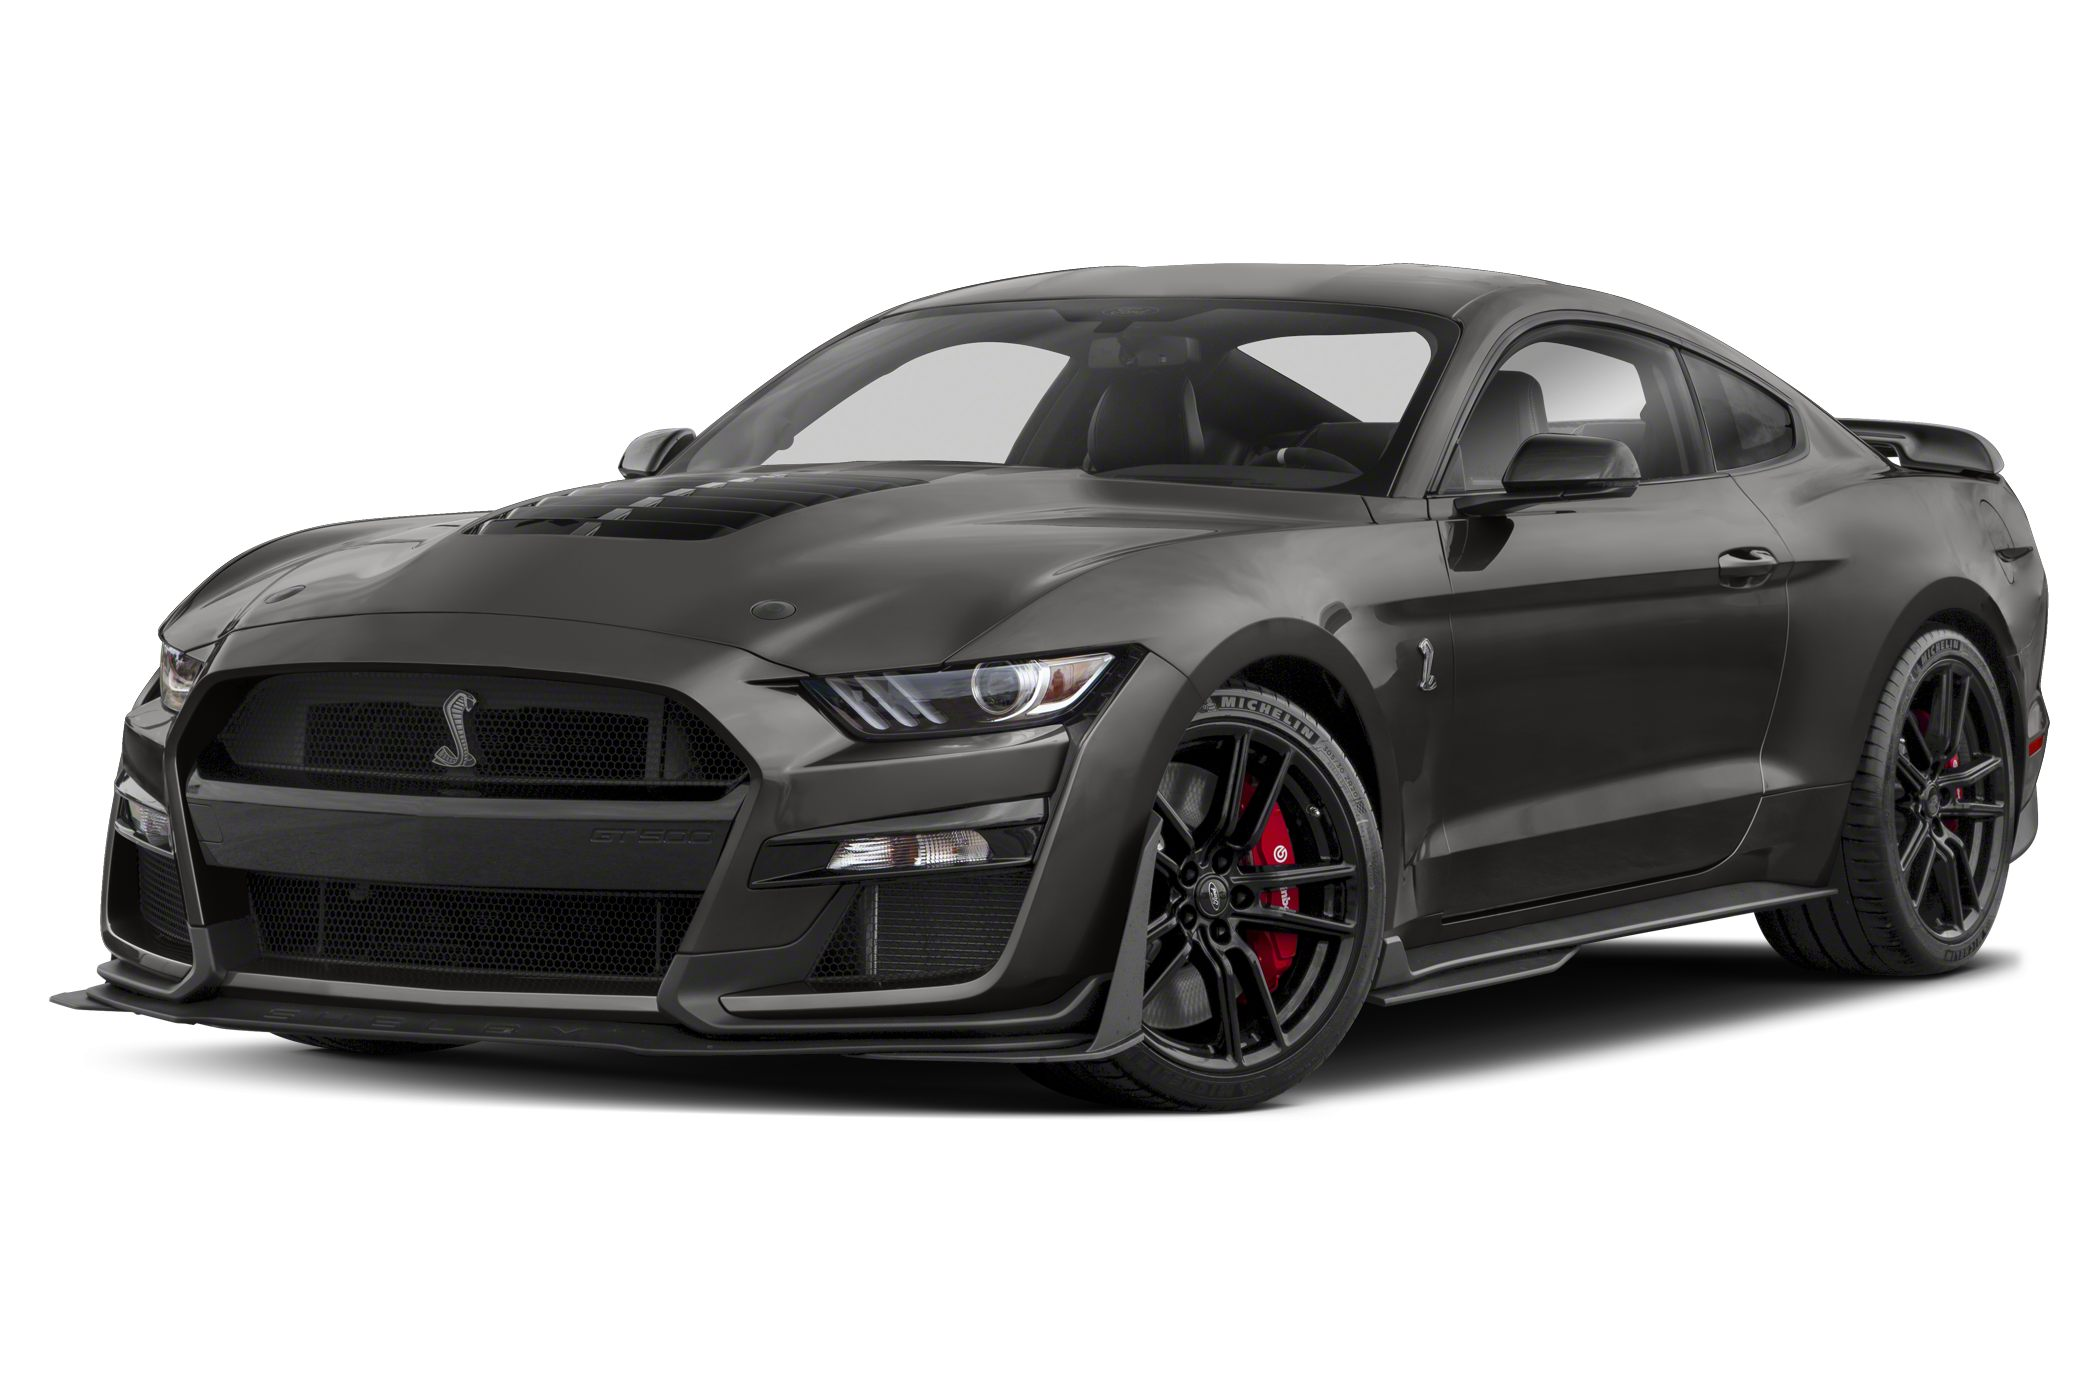 Ford raffling 2020 Mustang Shelby GT500 for charity | Autoblog